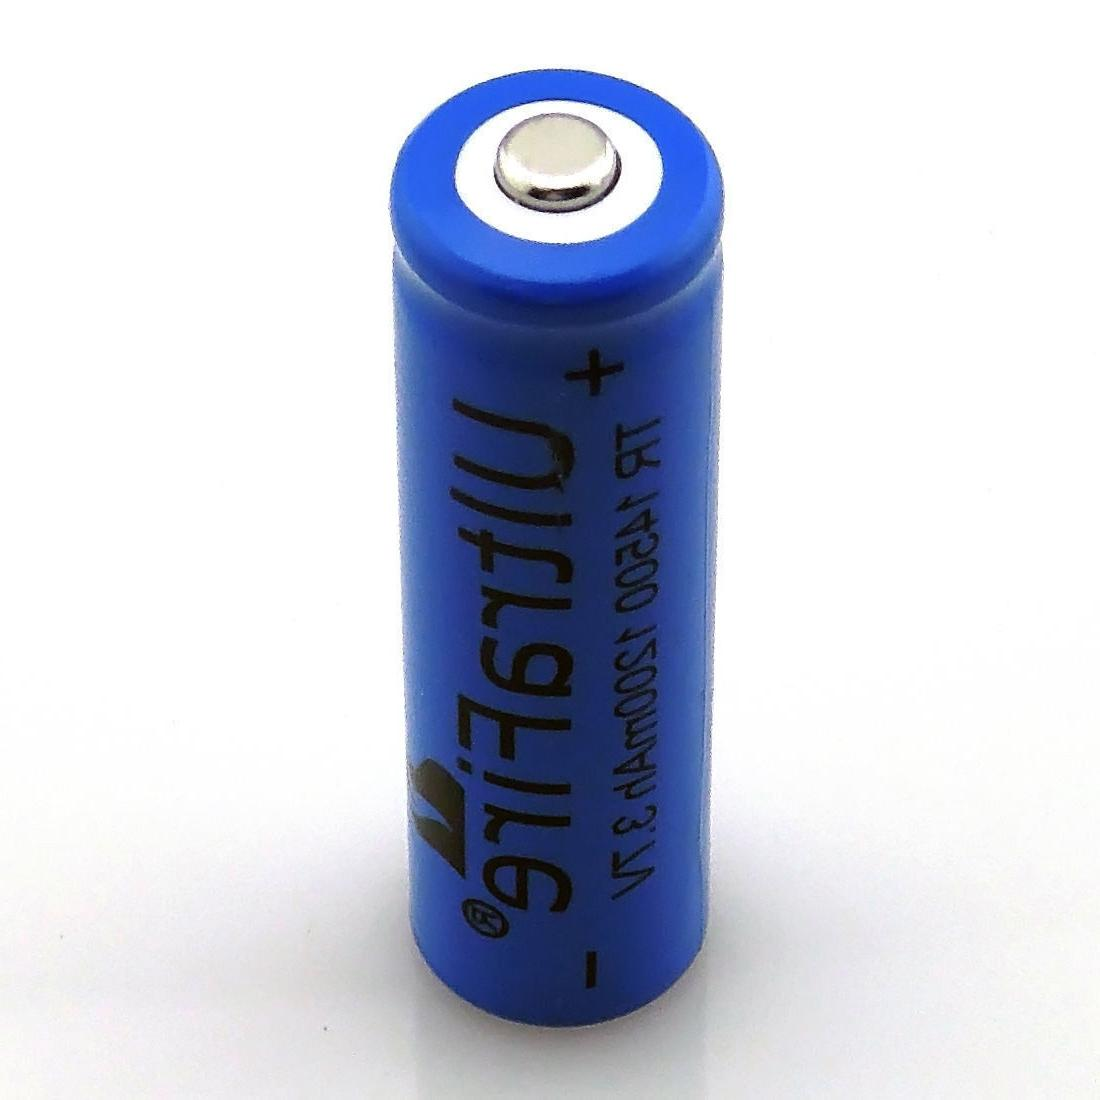 2pcs Lithium Batteries From